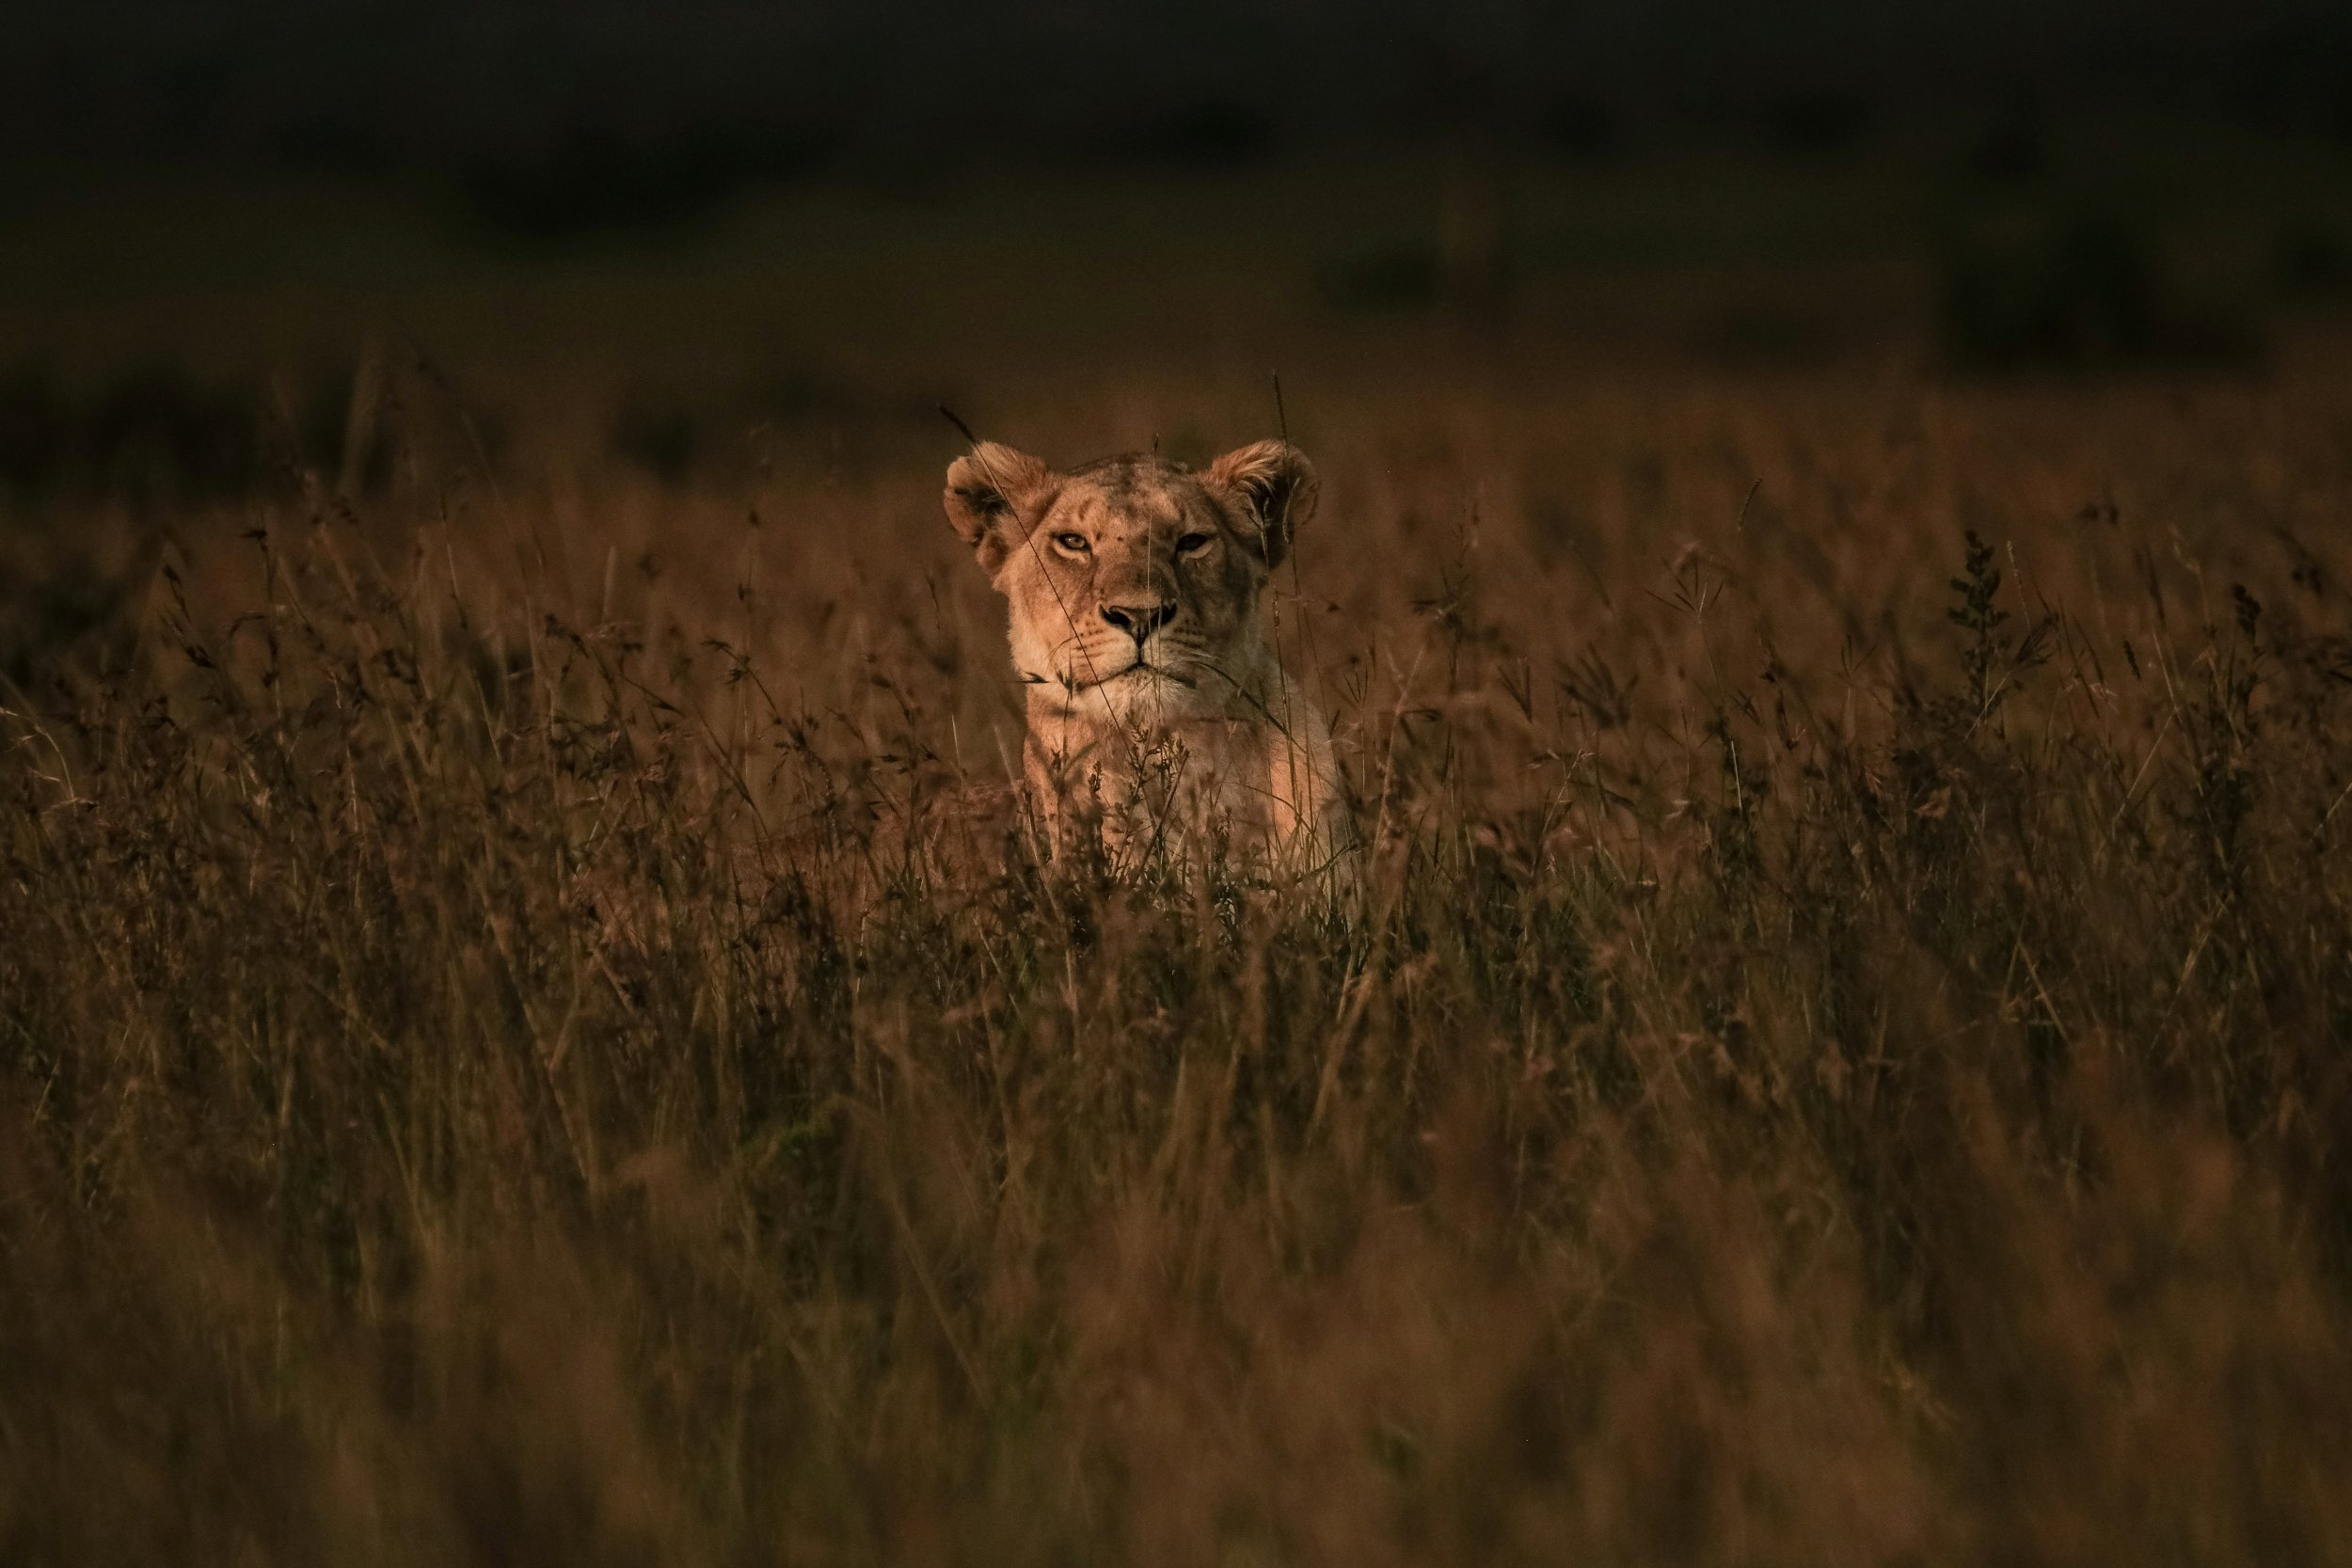 Lions Kill Poachers and Six Other Times Wild Animals Attacked Humans